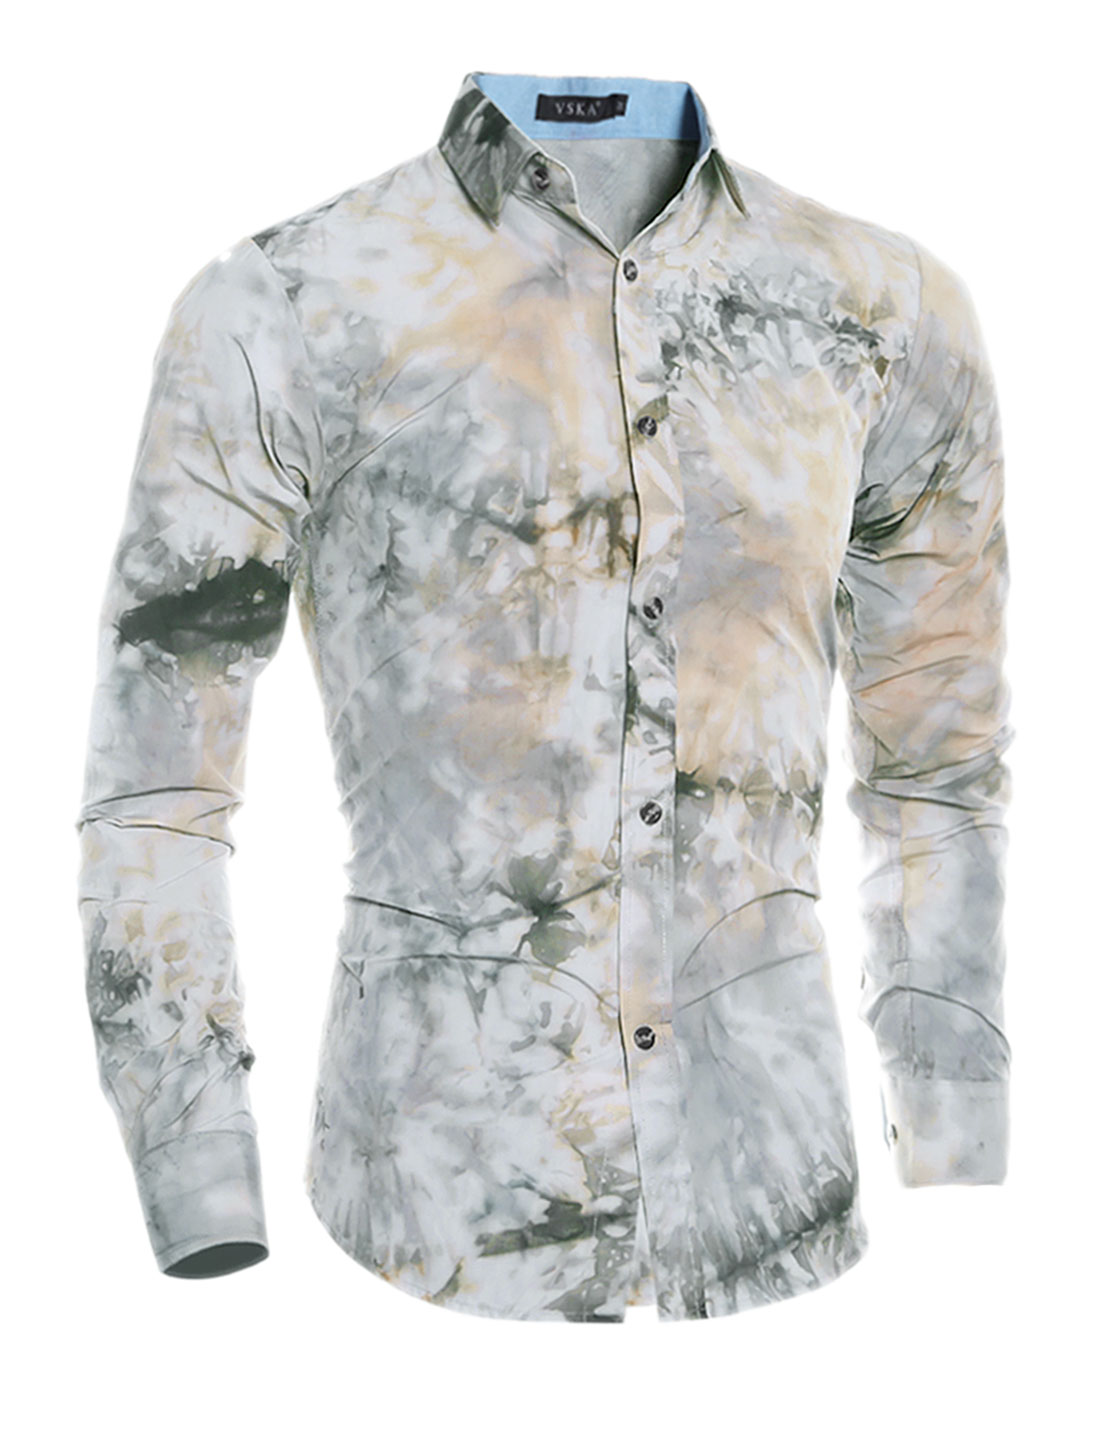 Man Button Front Collared Tie-Dye Slim Fit Shirt Gray S